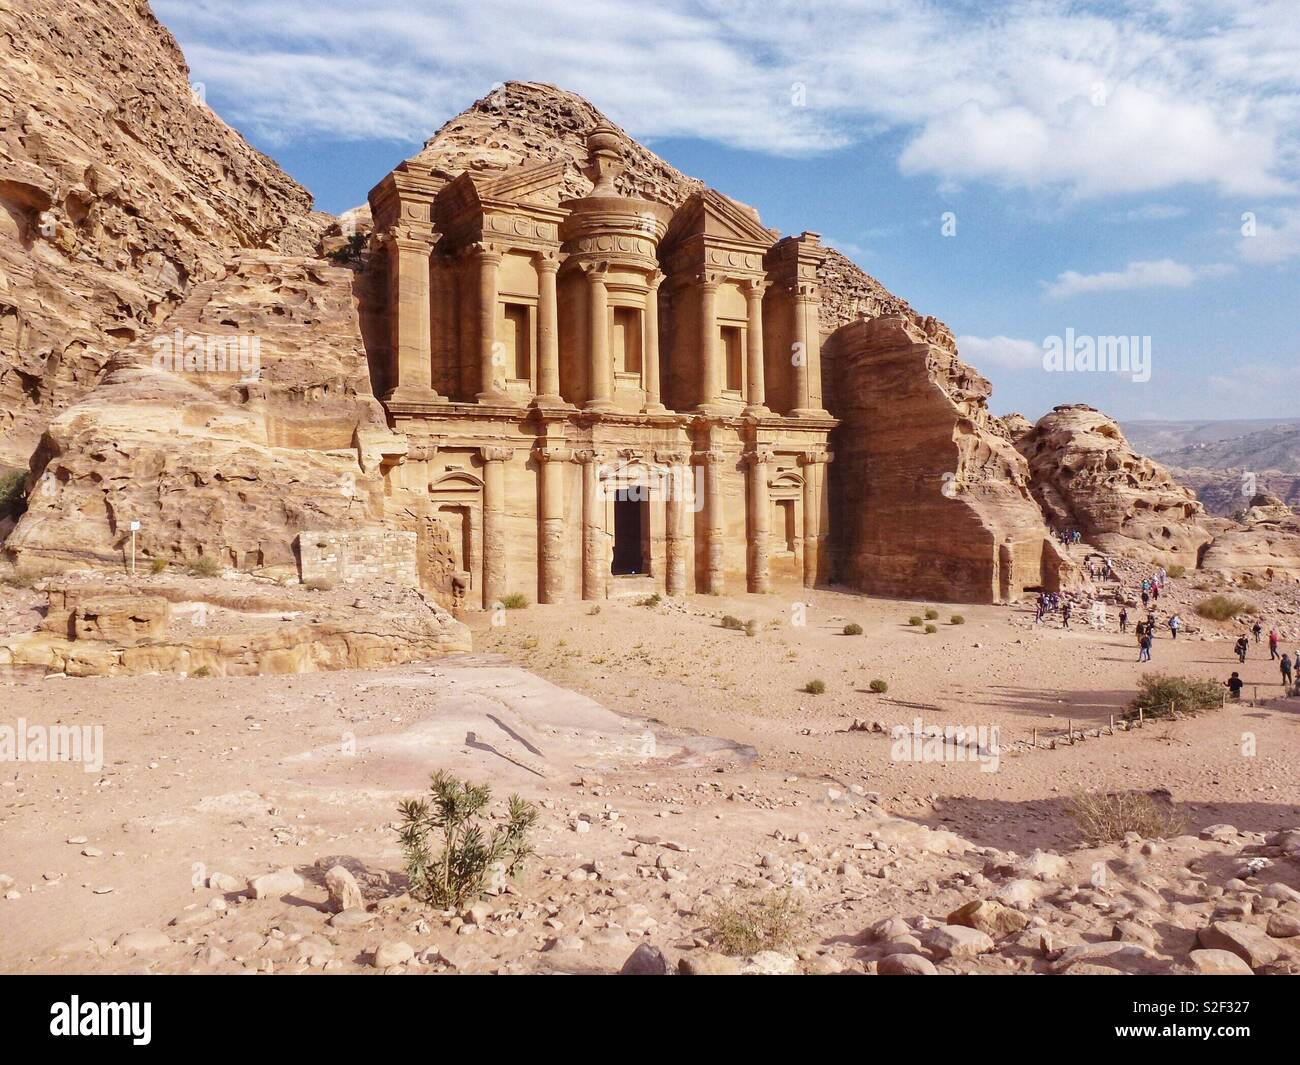 The Monastery, Petra, Jordan. The Red Rose City carved in the rock by the Ancient Nabataeans. - Stock Image